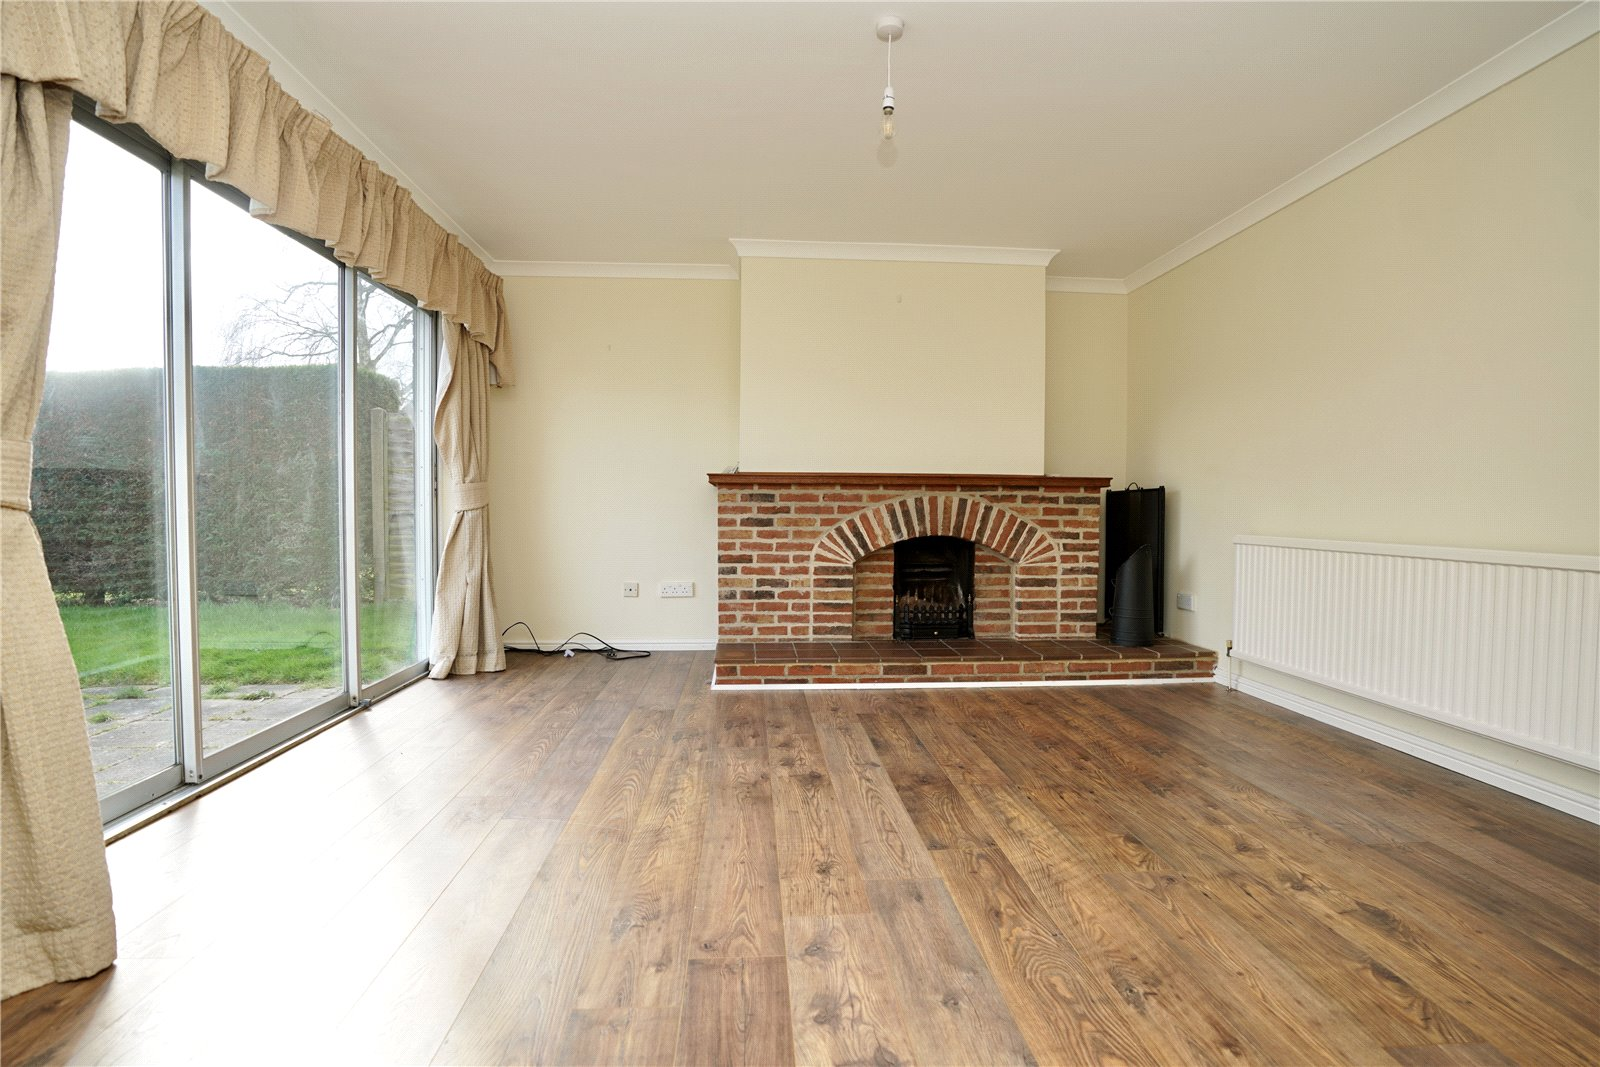 4 bed house for sale in Manor Close, Great Staughton  - Property Image 6